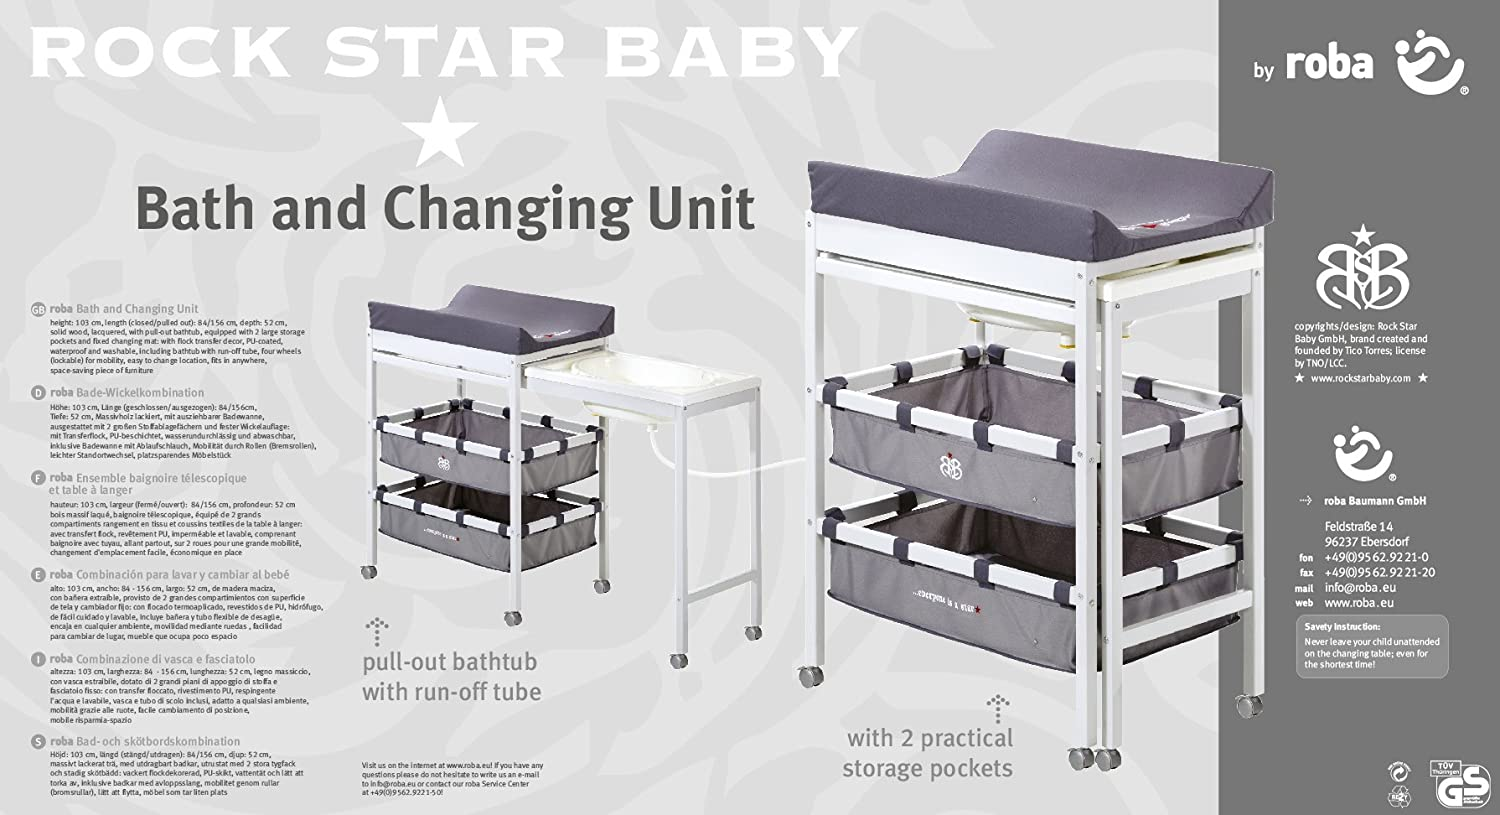 Amazon.com : Bath and Changing Table Combo Rock Star Baby, Painted Grey : Baby